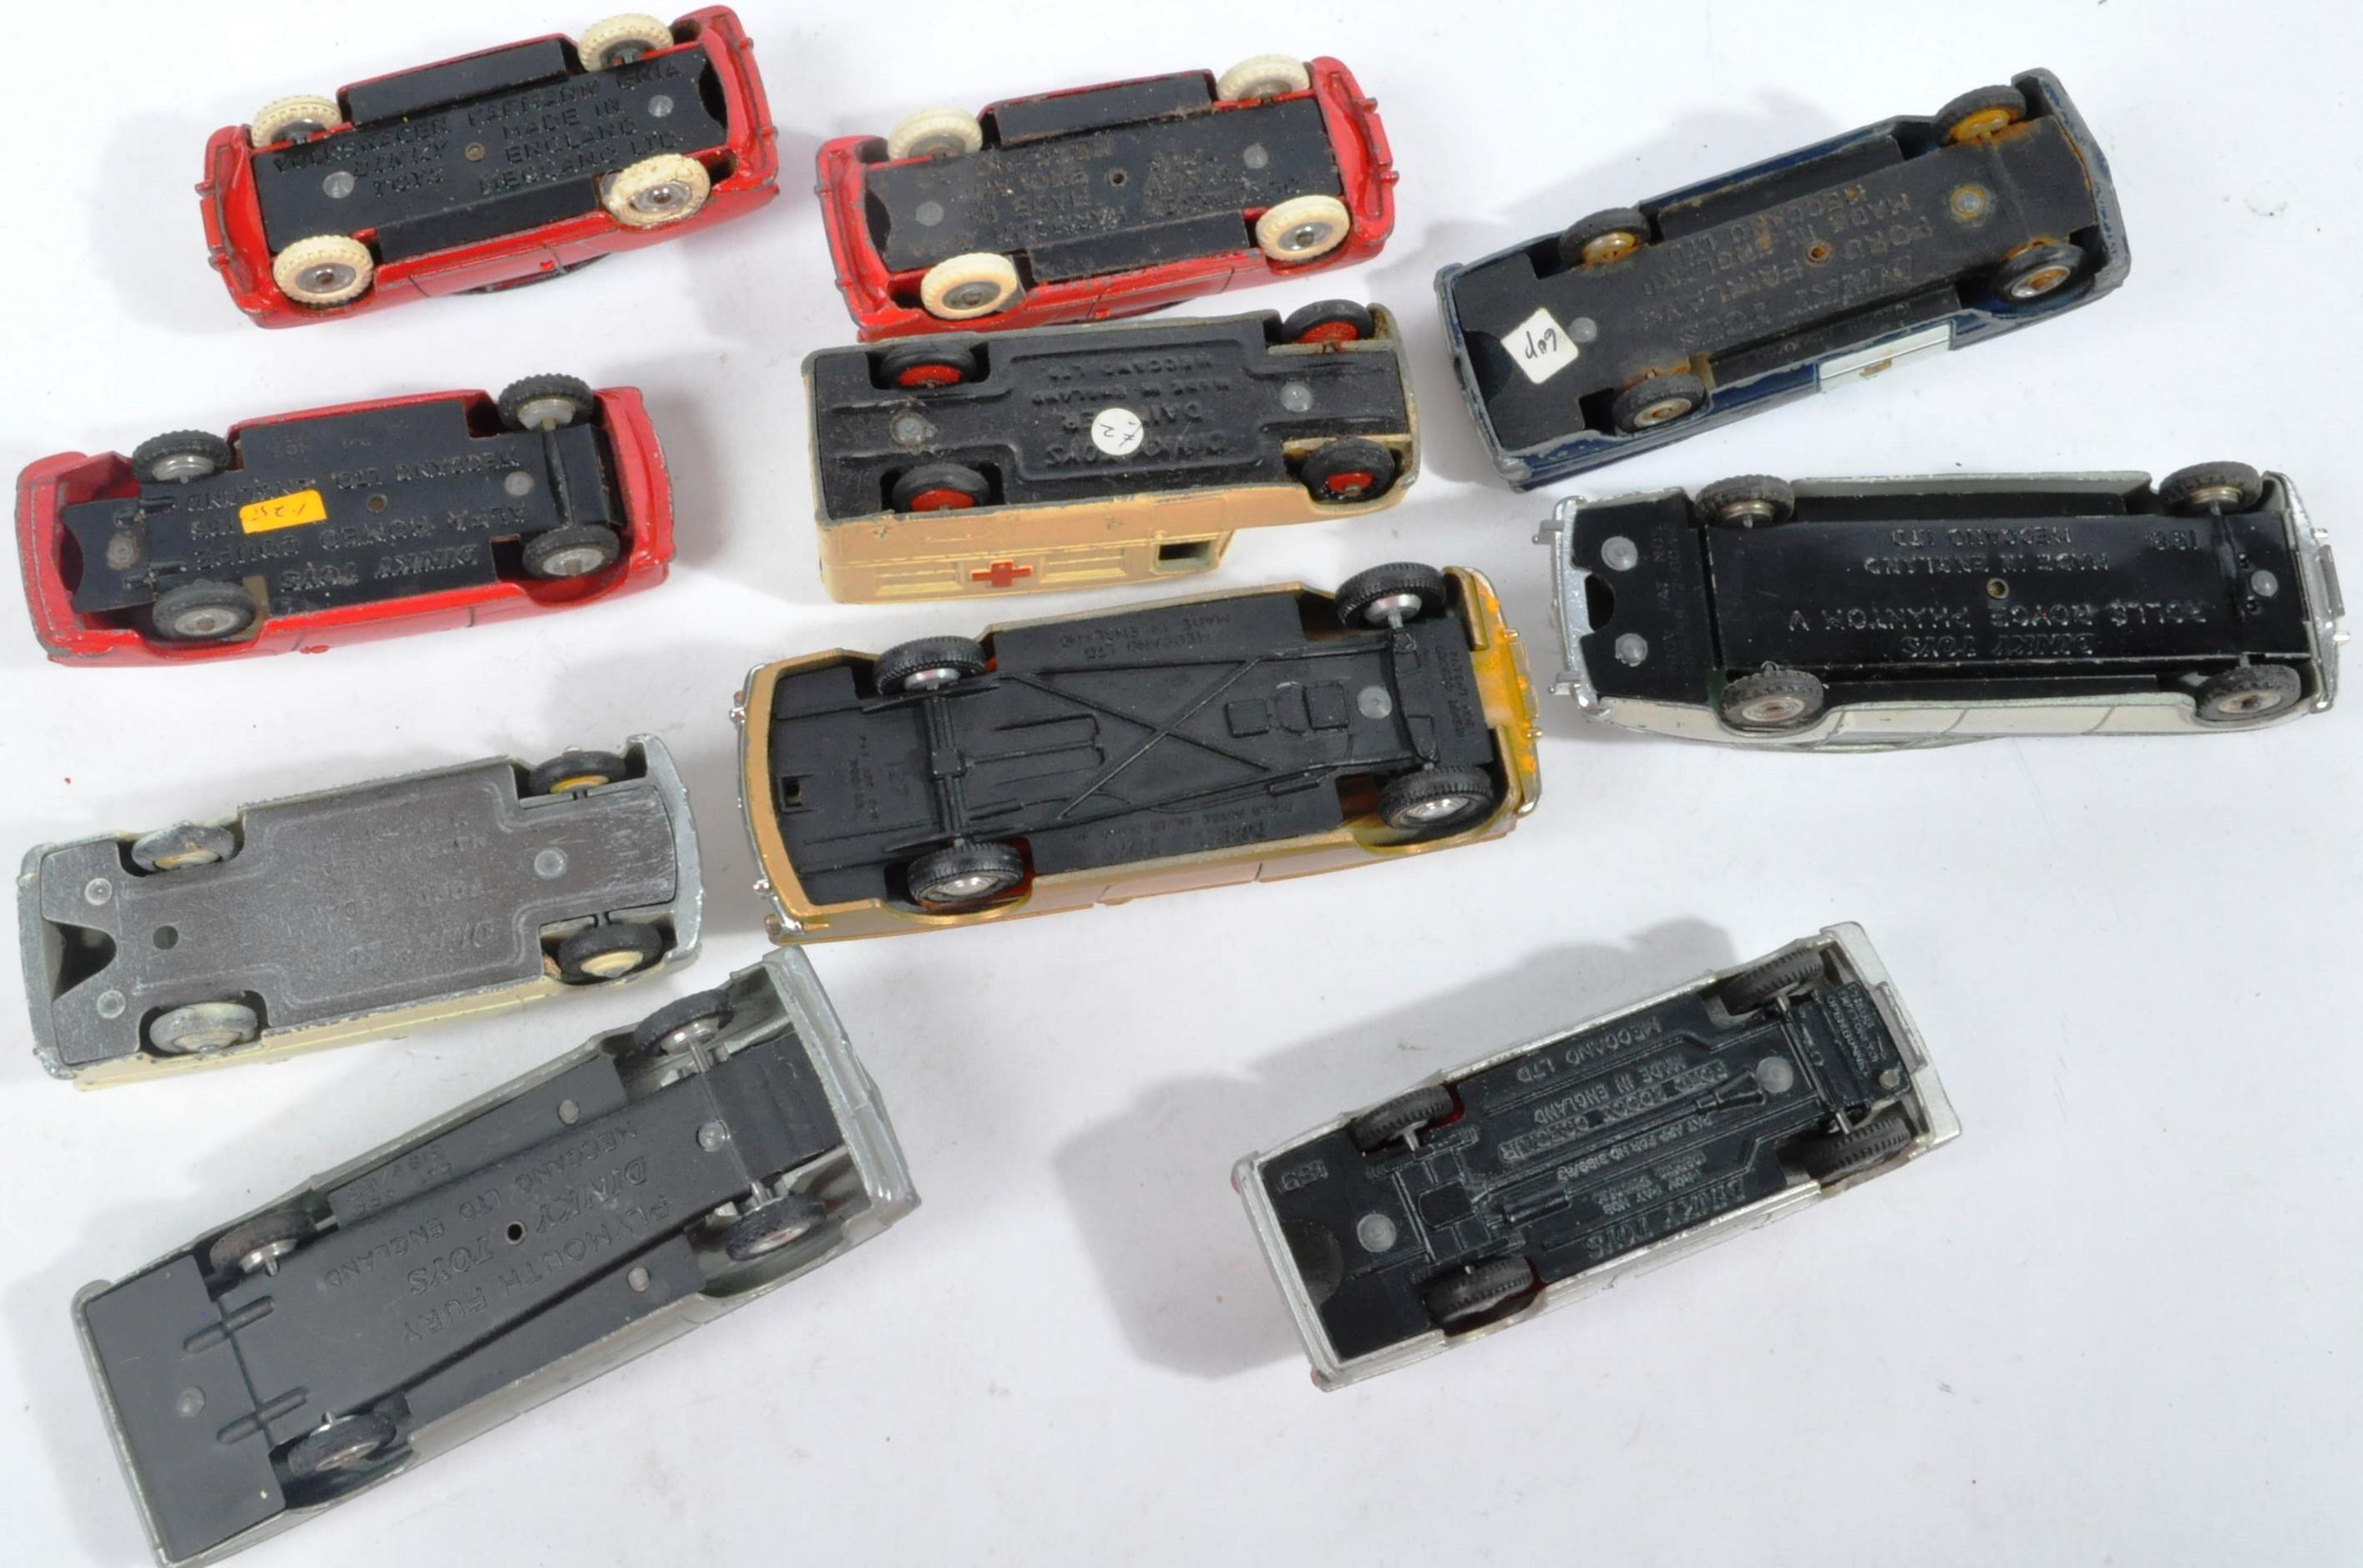 COLLECTION OF X10 VINTAGE DINKY TOYS DIECAST MODEL VEHICLES - Image 7 of 7